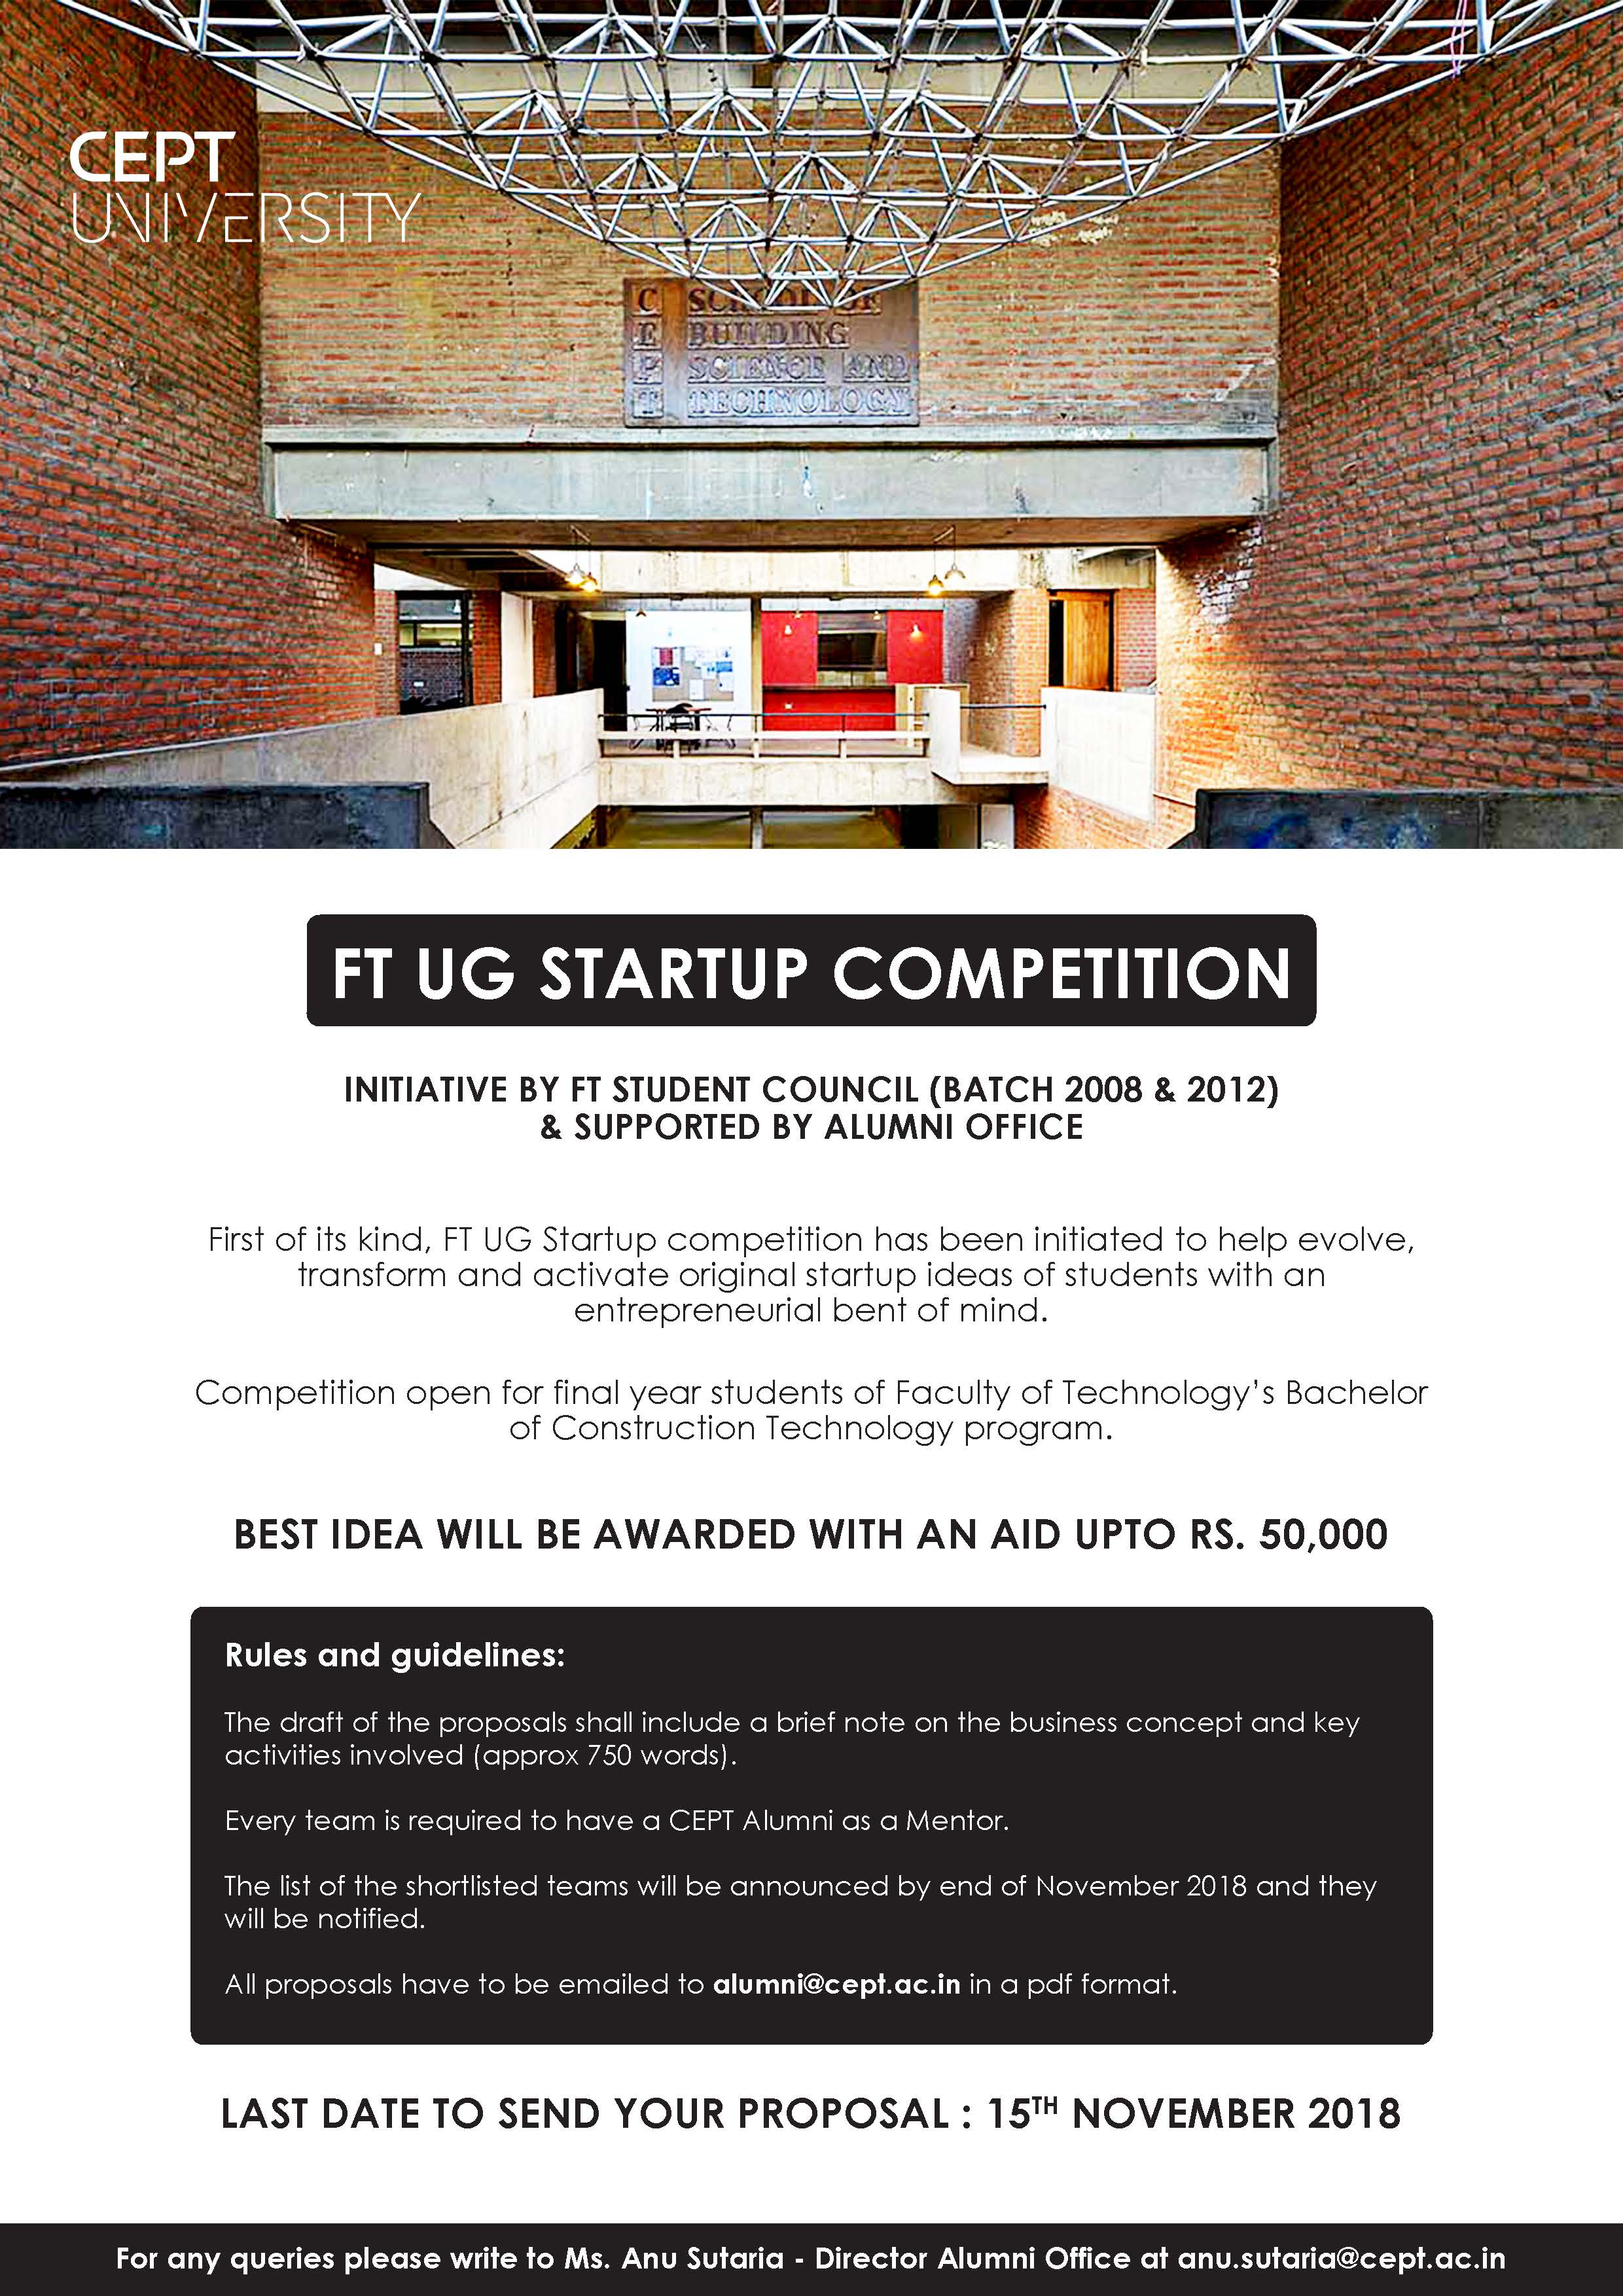 FT Start up Competition - News - CEPT